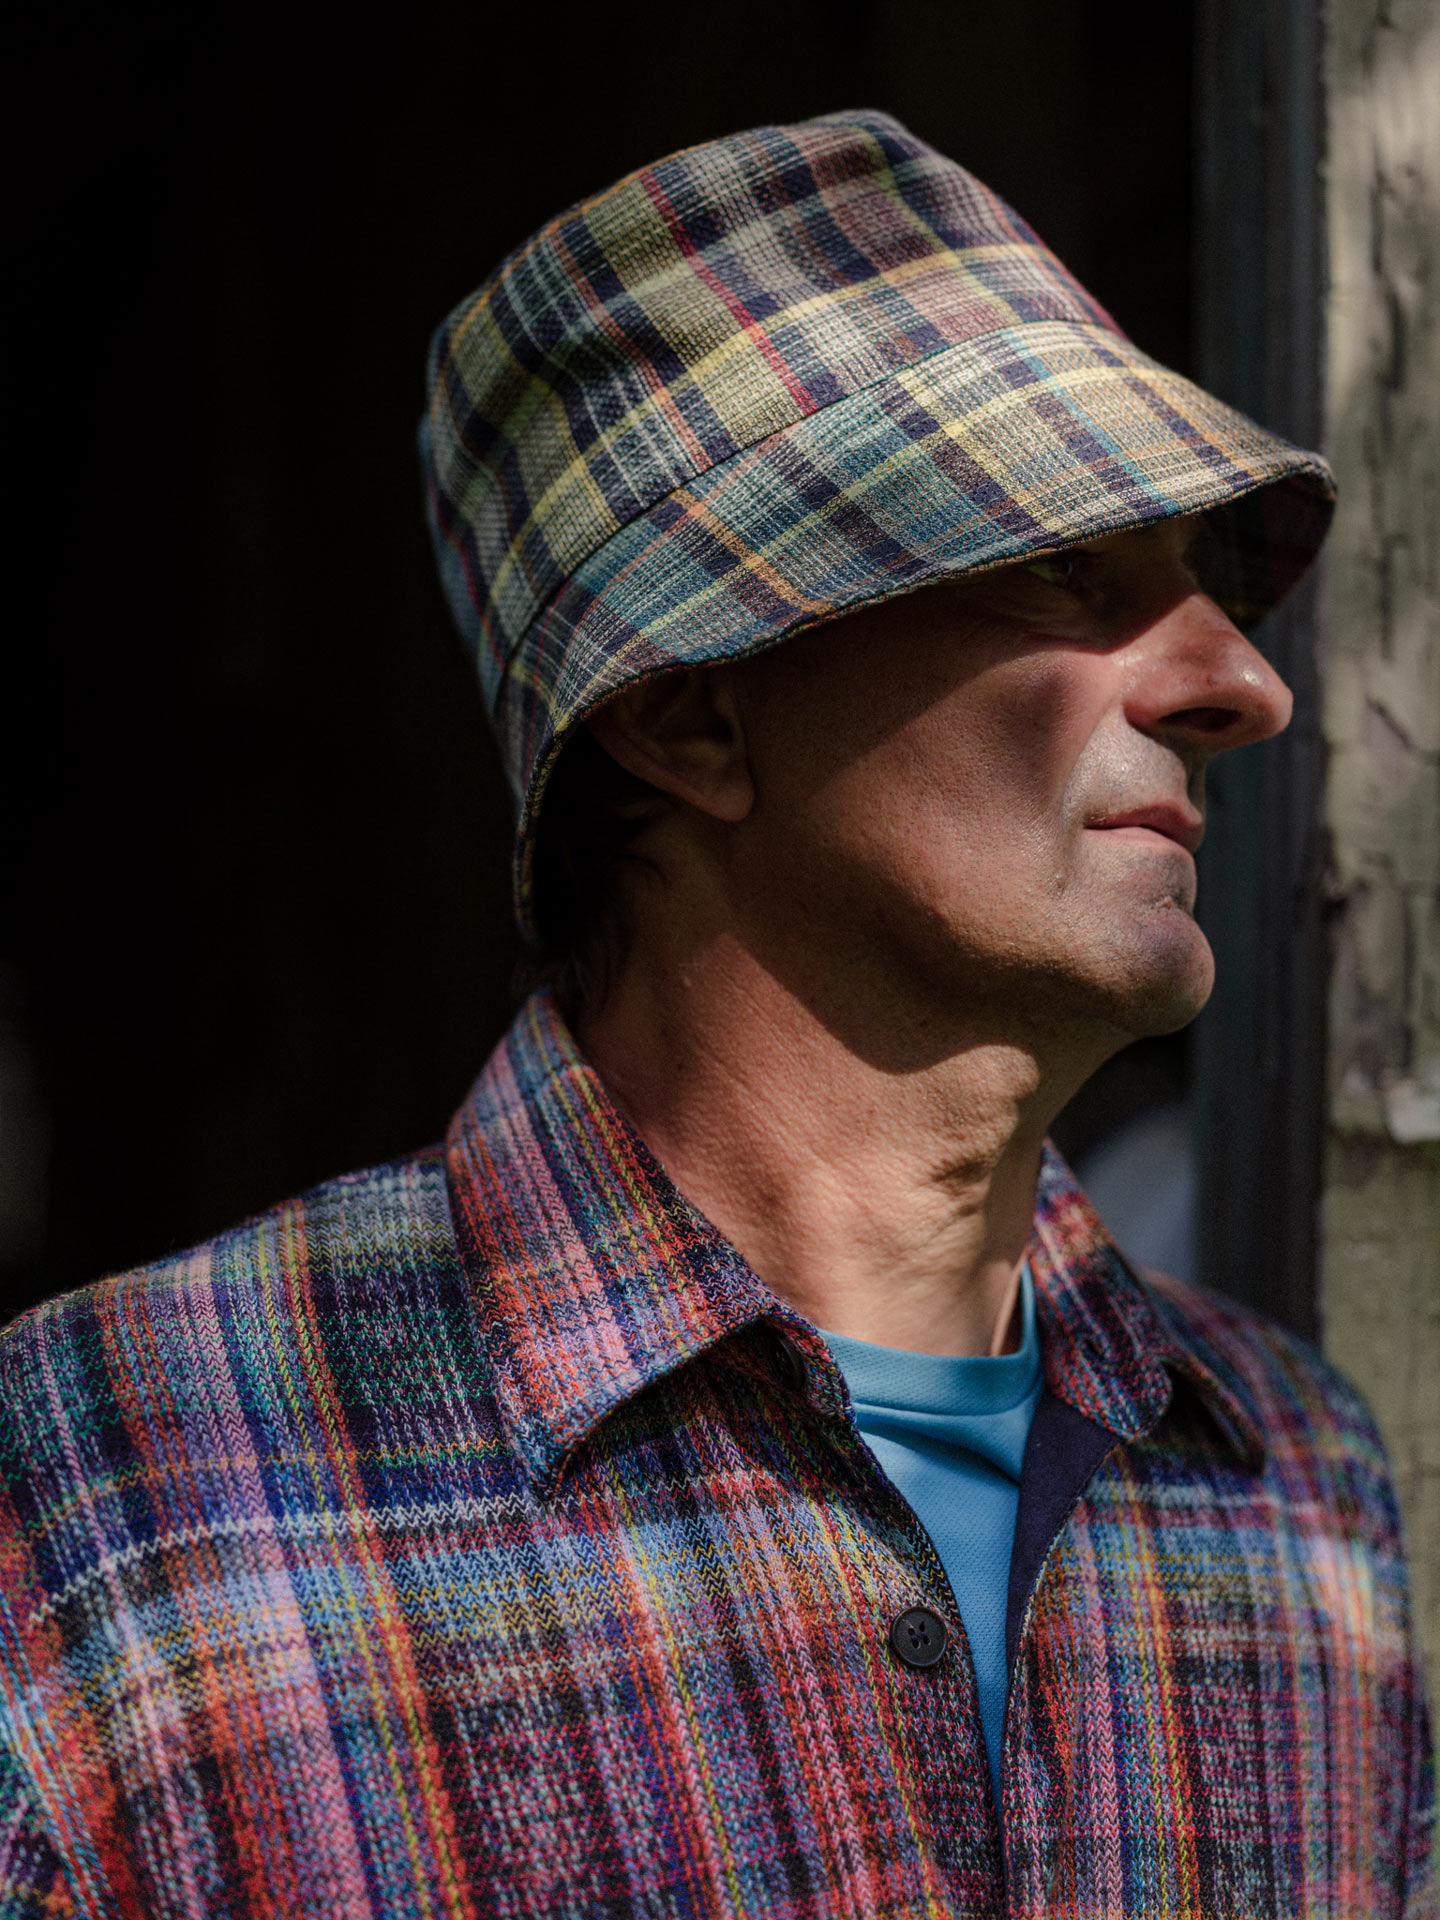 man in colourful plaid overalls standing in door frame with shadows of tree branches on his face wearing a low bob hat by Alexi Hobbs at Pinard & Filles winery for Larose Paris